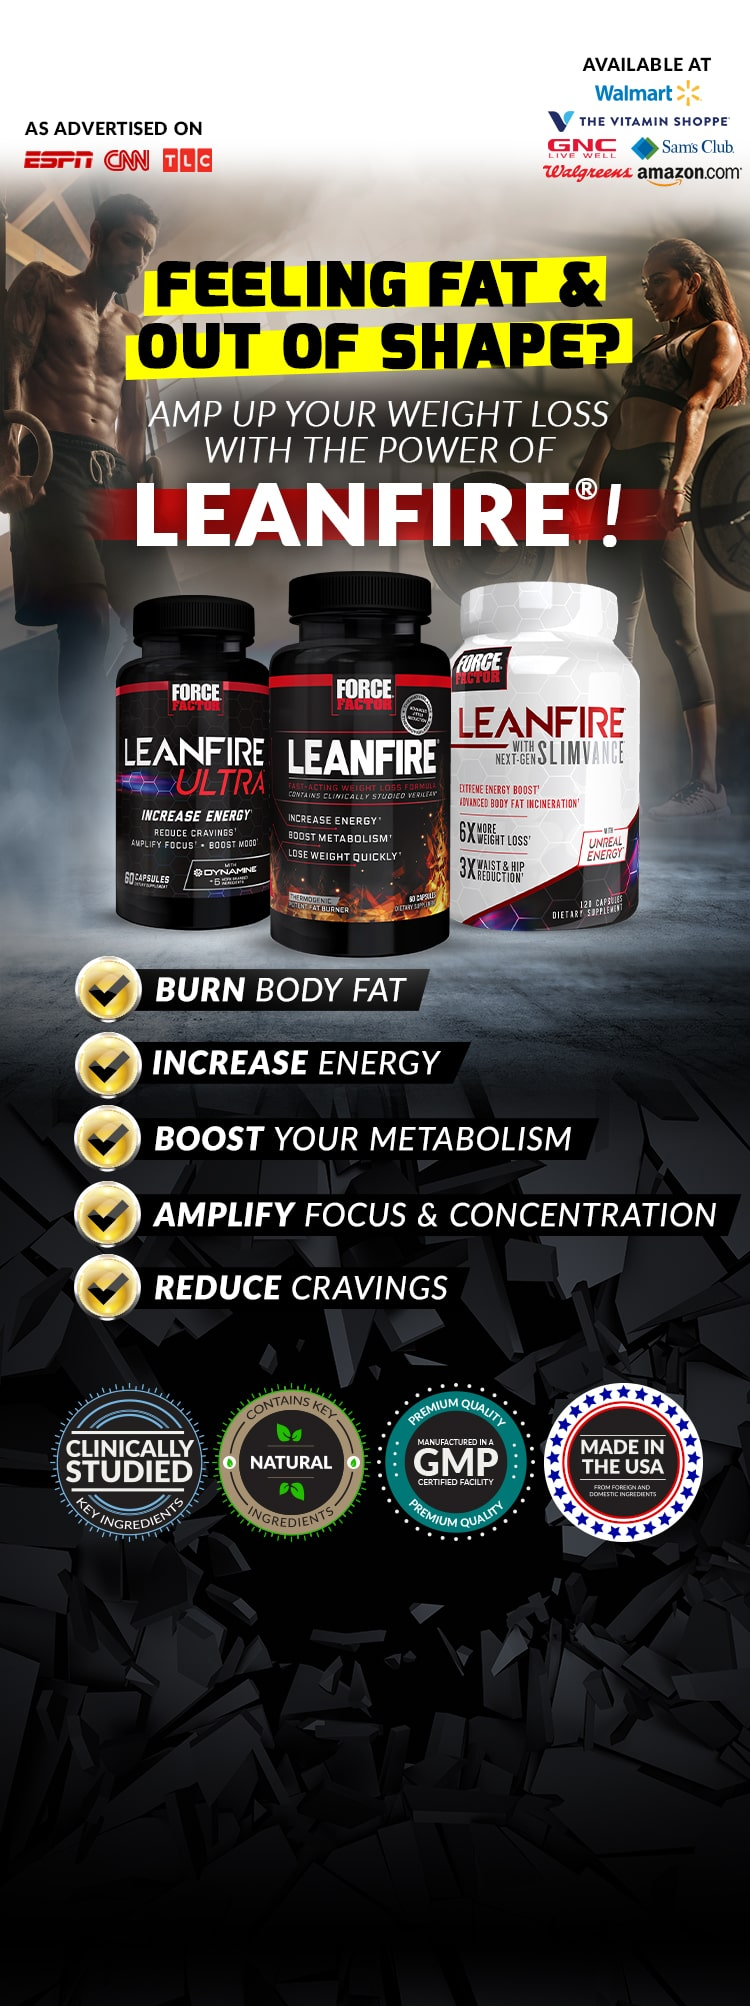 FEELING FAT AND OUT OF SHAPE? AMP UP YOUR WEIGHT LOSS WITH THE POWER OF LEANFIRE®! BURN BODY FAT, INCREASE ENERGY, BOOST YOUR METABOLISM, AMPLIFY FOCUS & CONCENTRATION, REDUCE CRAVINGS